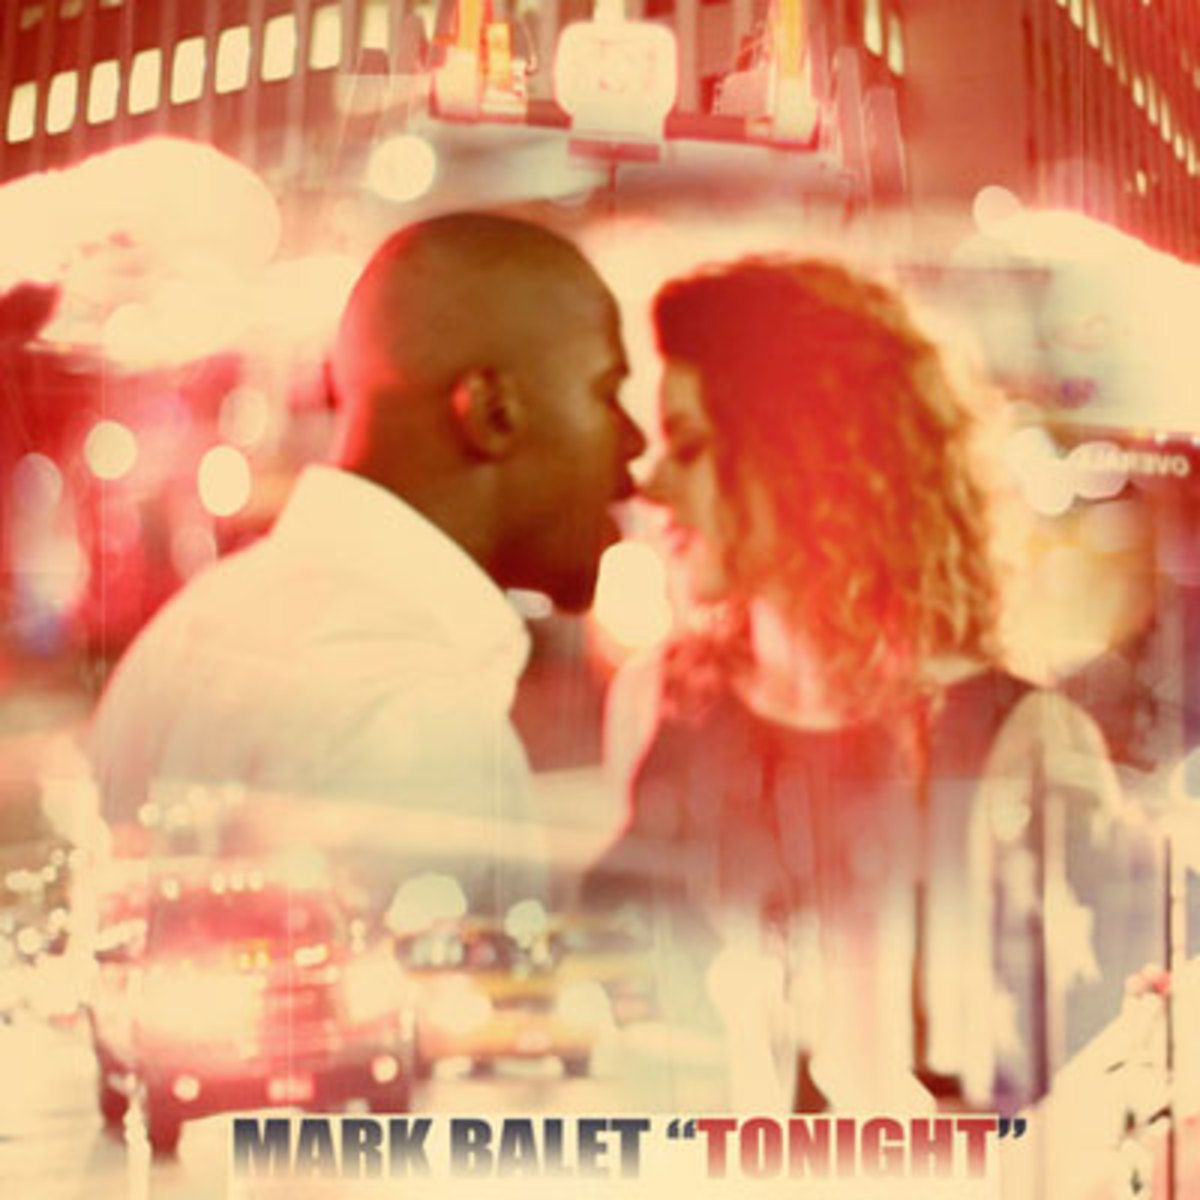 markbalet-tonight.jpg